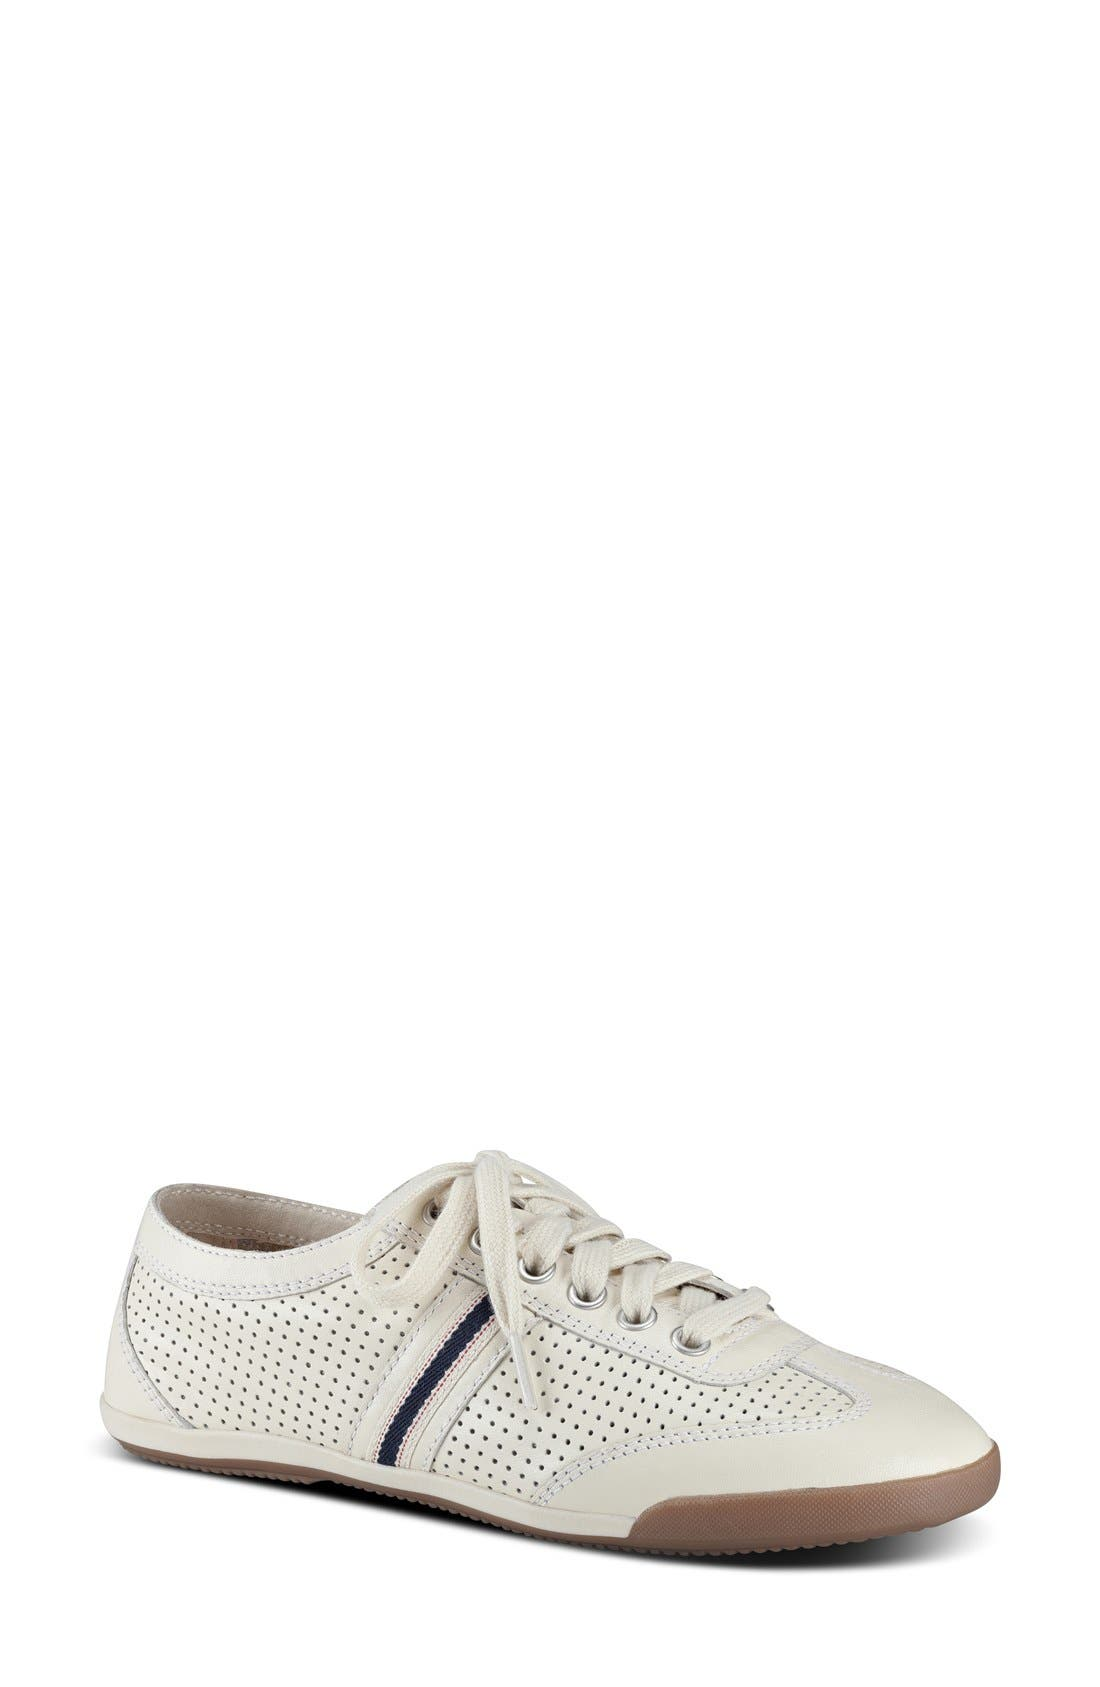 'Escondido' Sneaker,                             Main thumbnail 1, color,                             PALE WHITE LEATHER